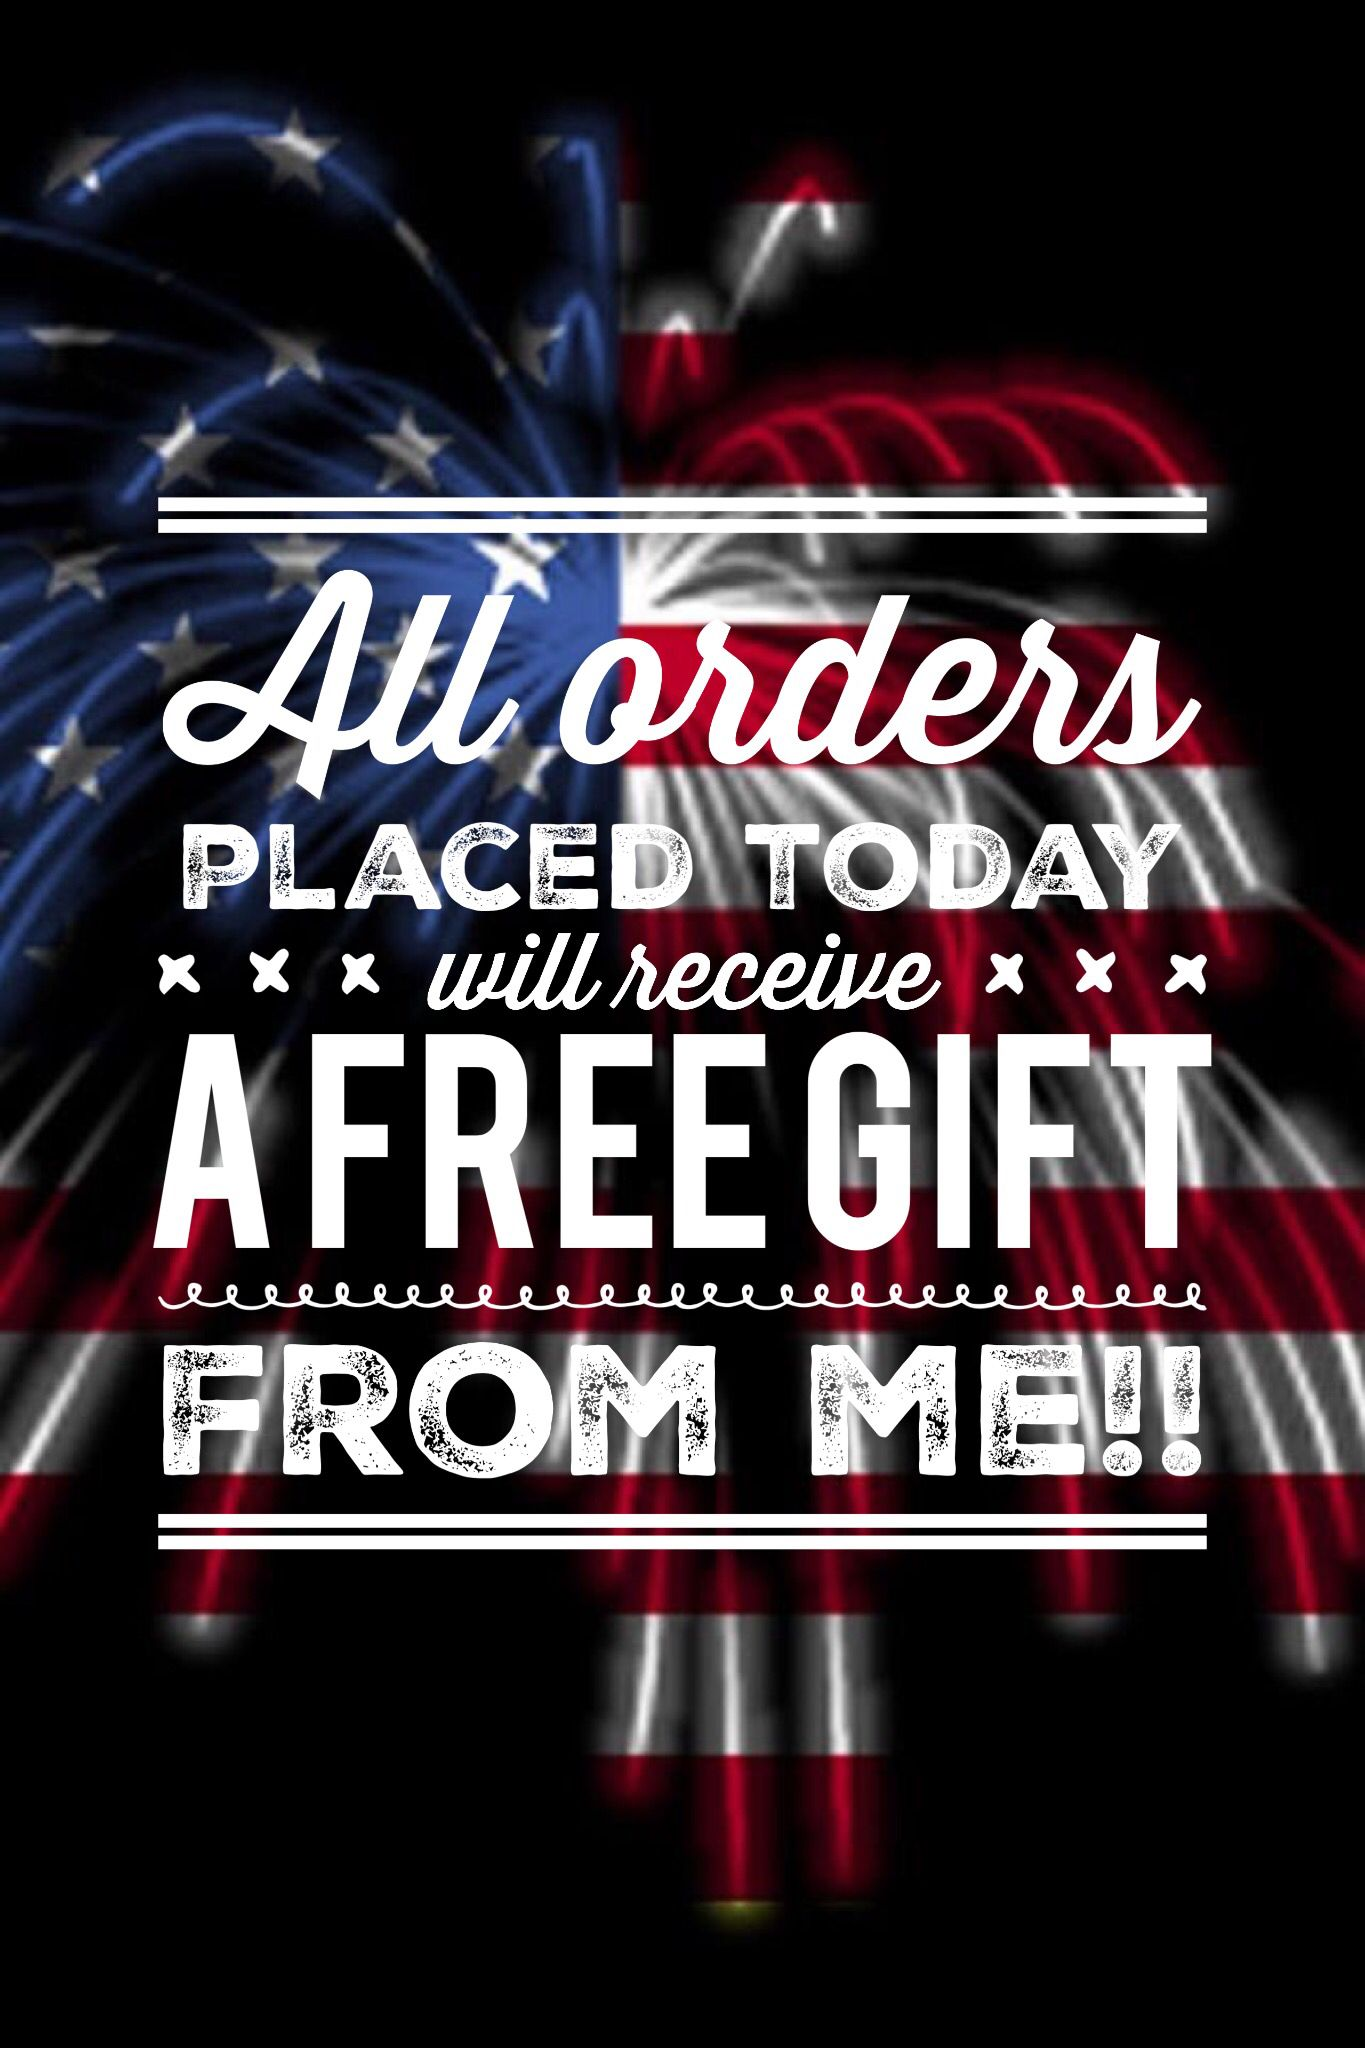 Memorial Day/ July 4th/ Veterans Day sale www youniqueproducts com